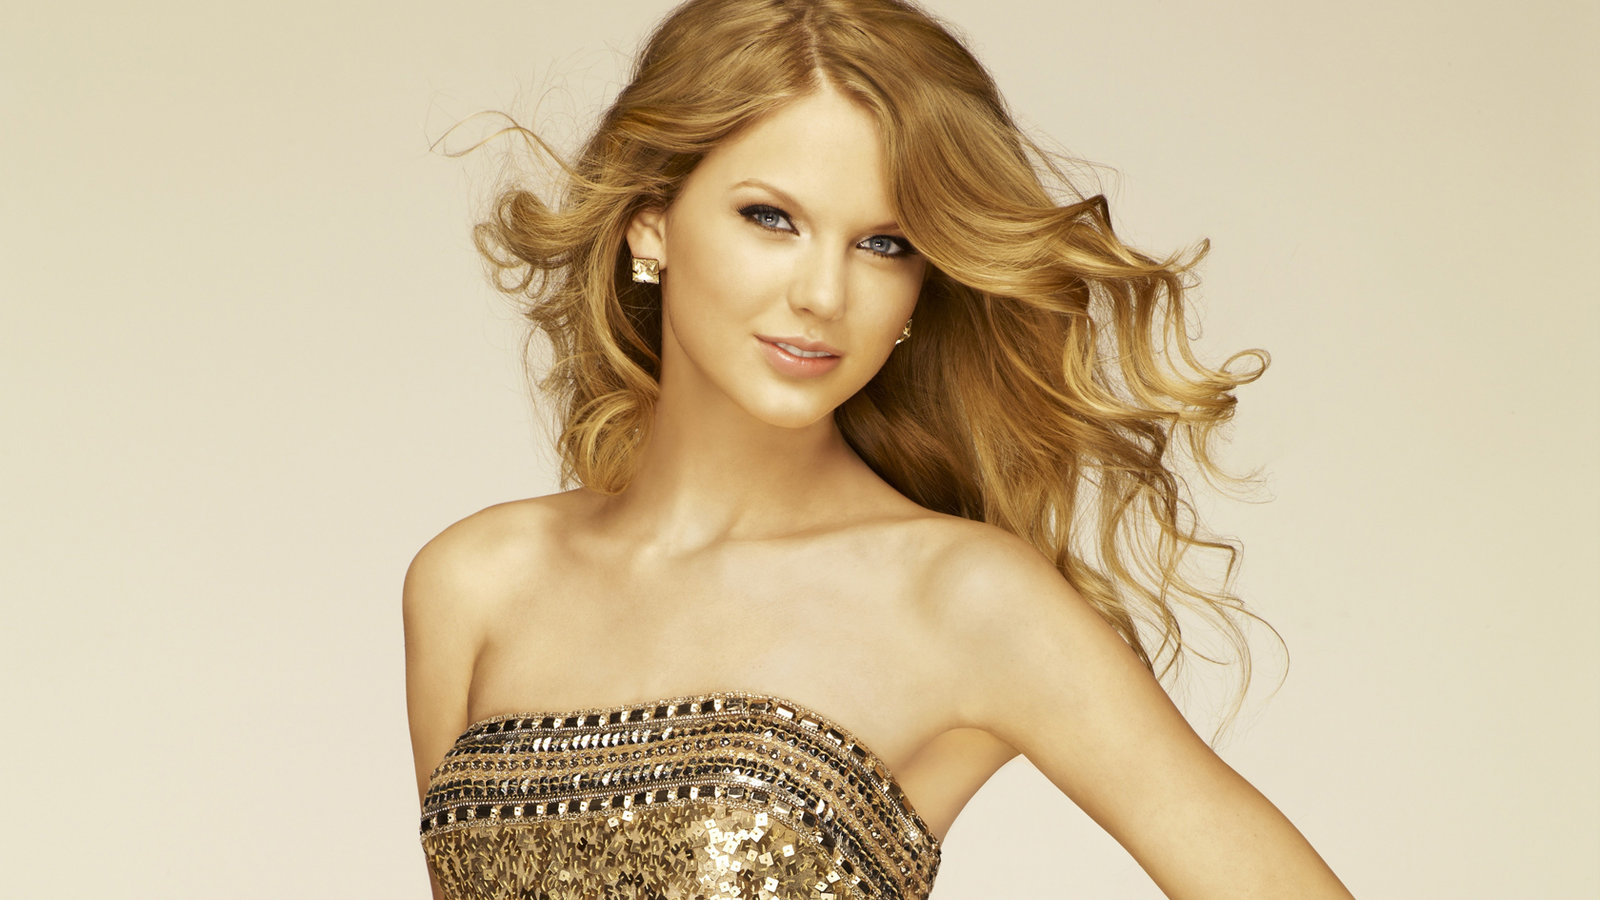 These Taylor Swift HD Wallpapers Pack Free Download for desktop. Absolutely free to download and available in high definition for your desktop pc, ...